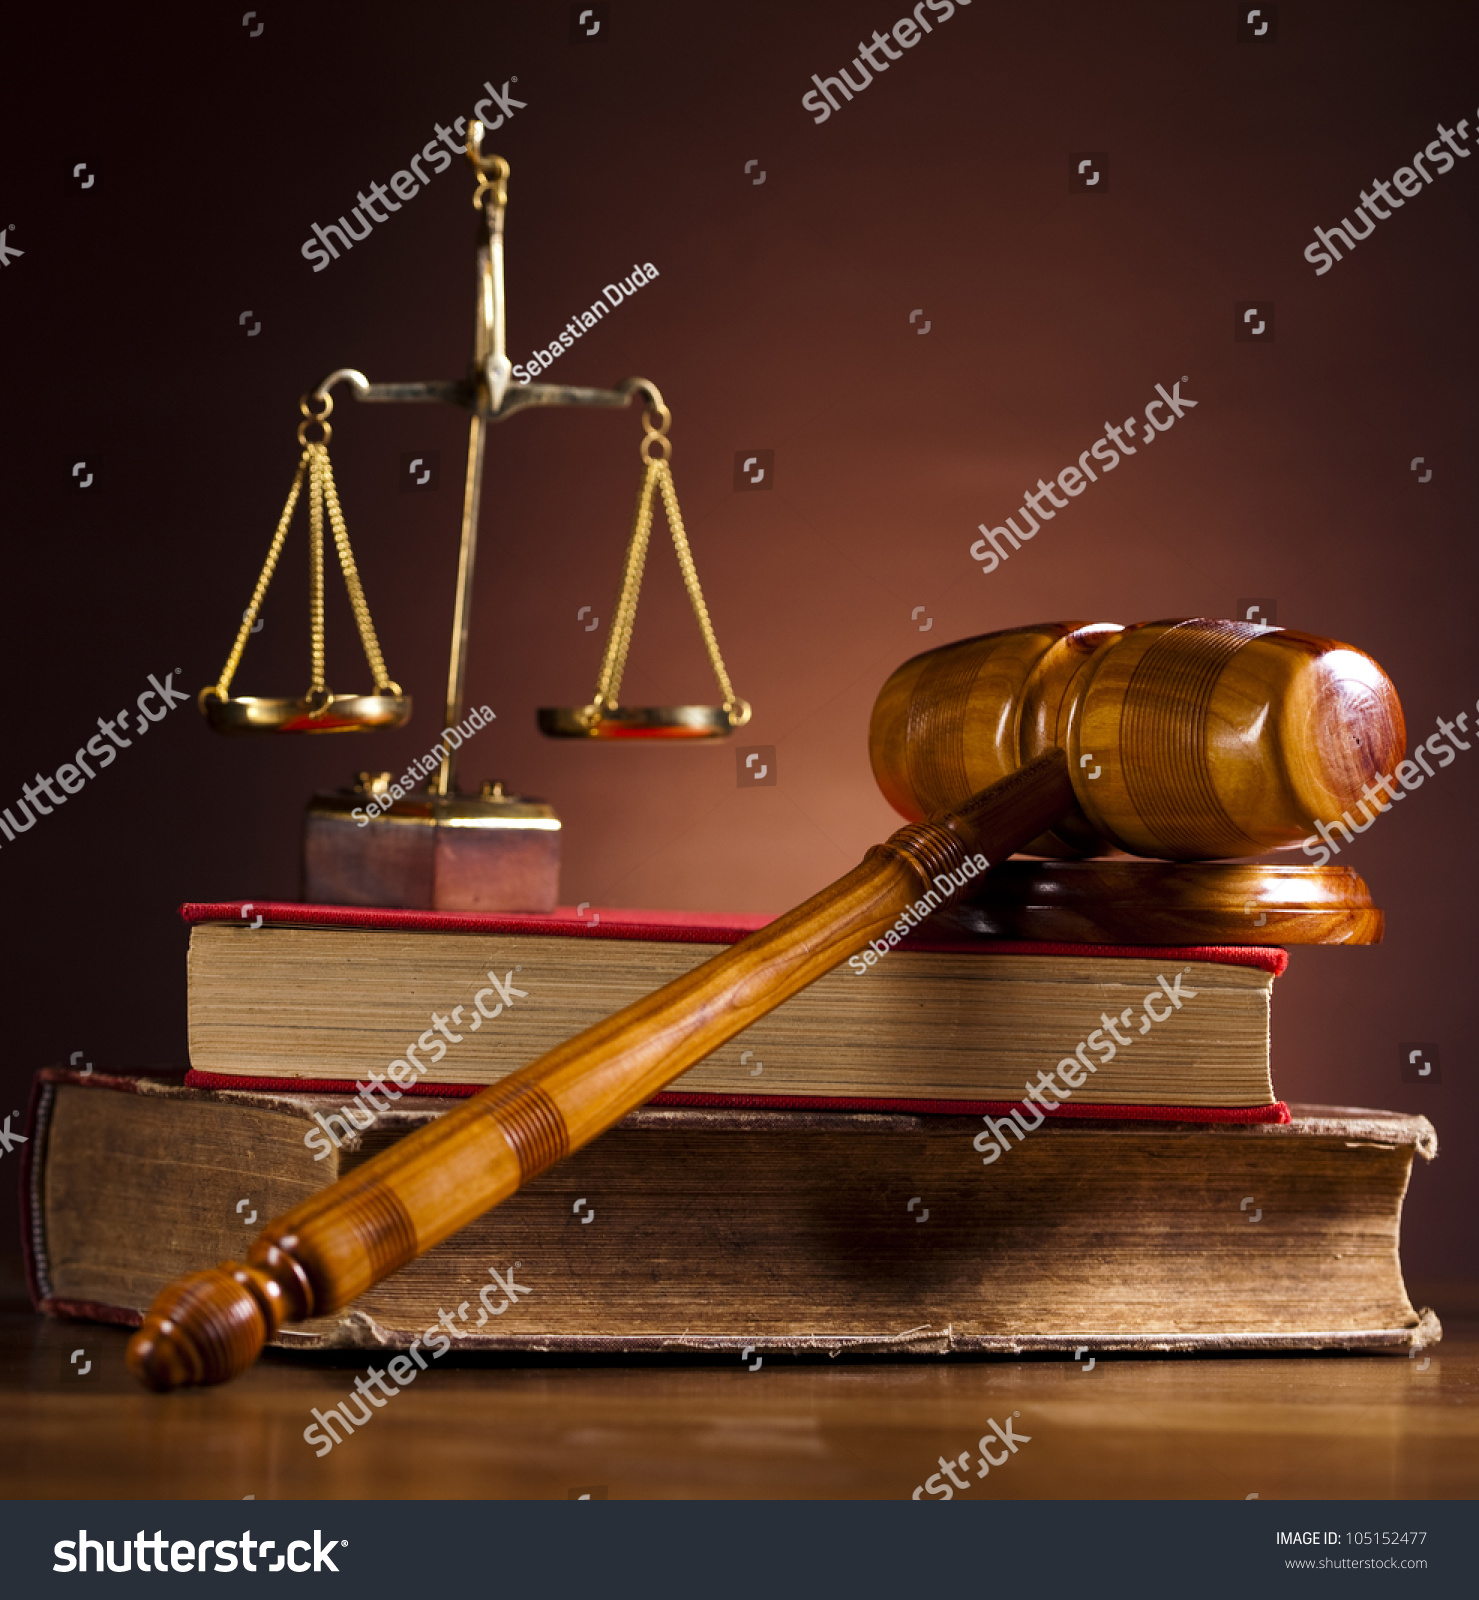 Essay on Law and Justice